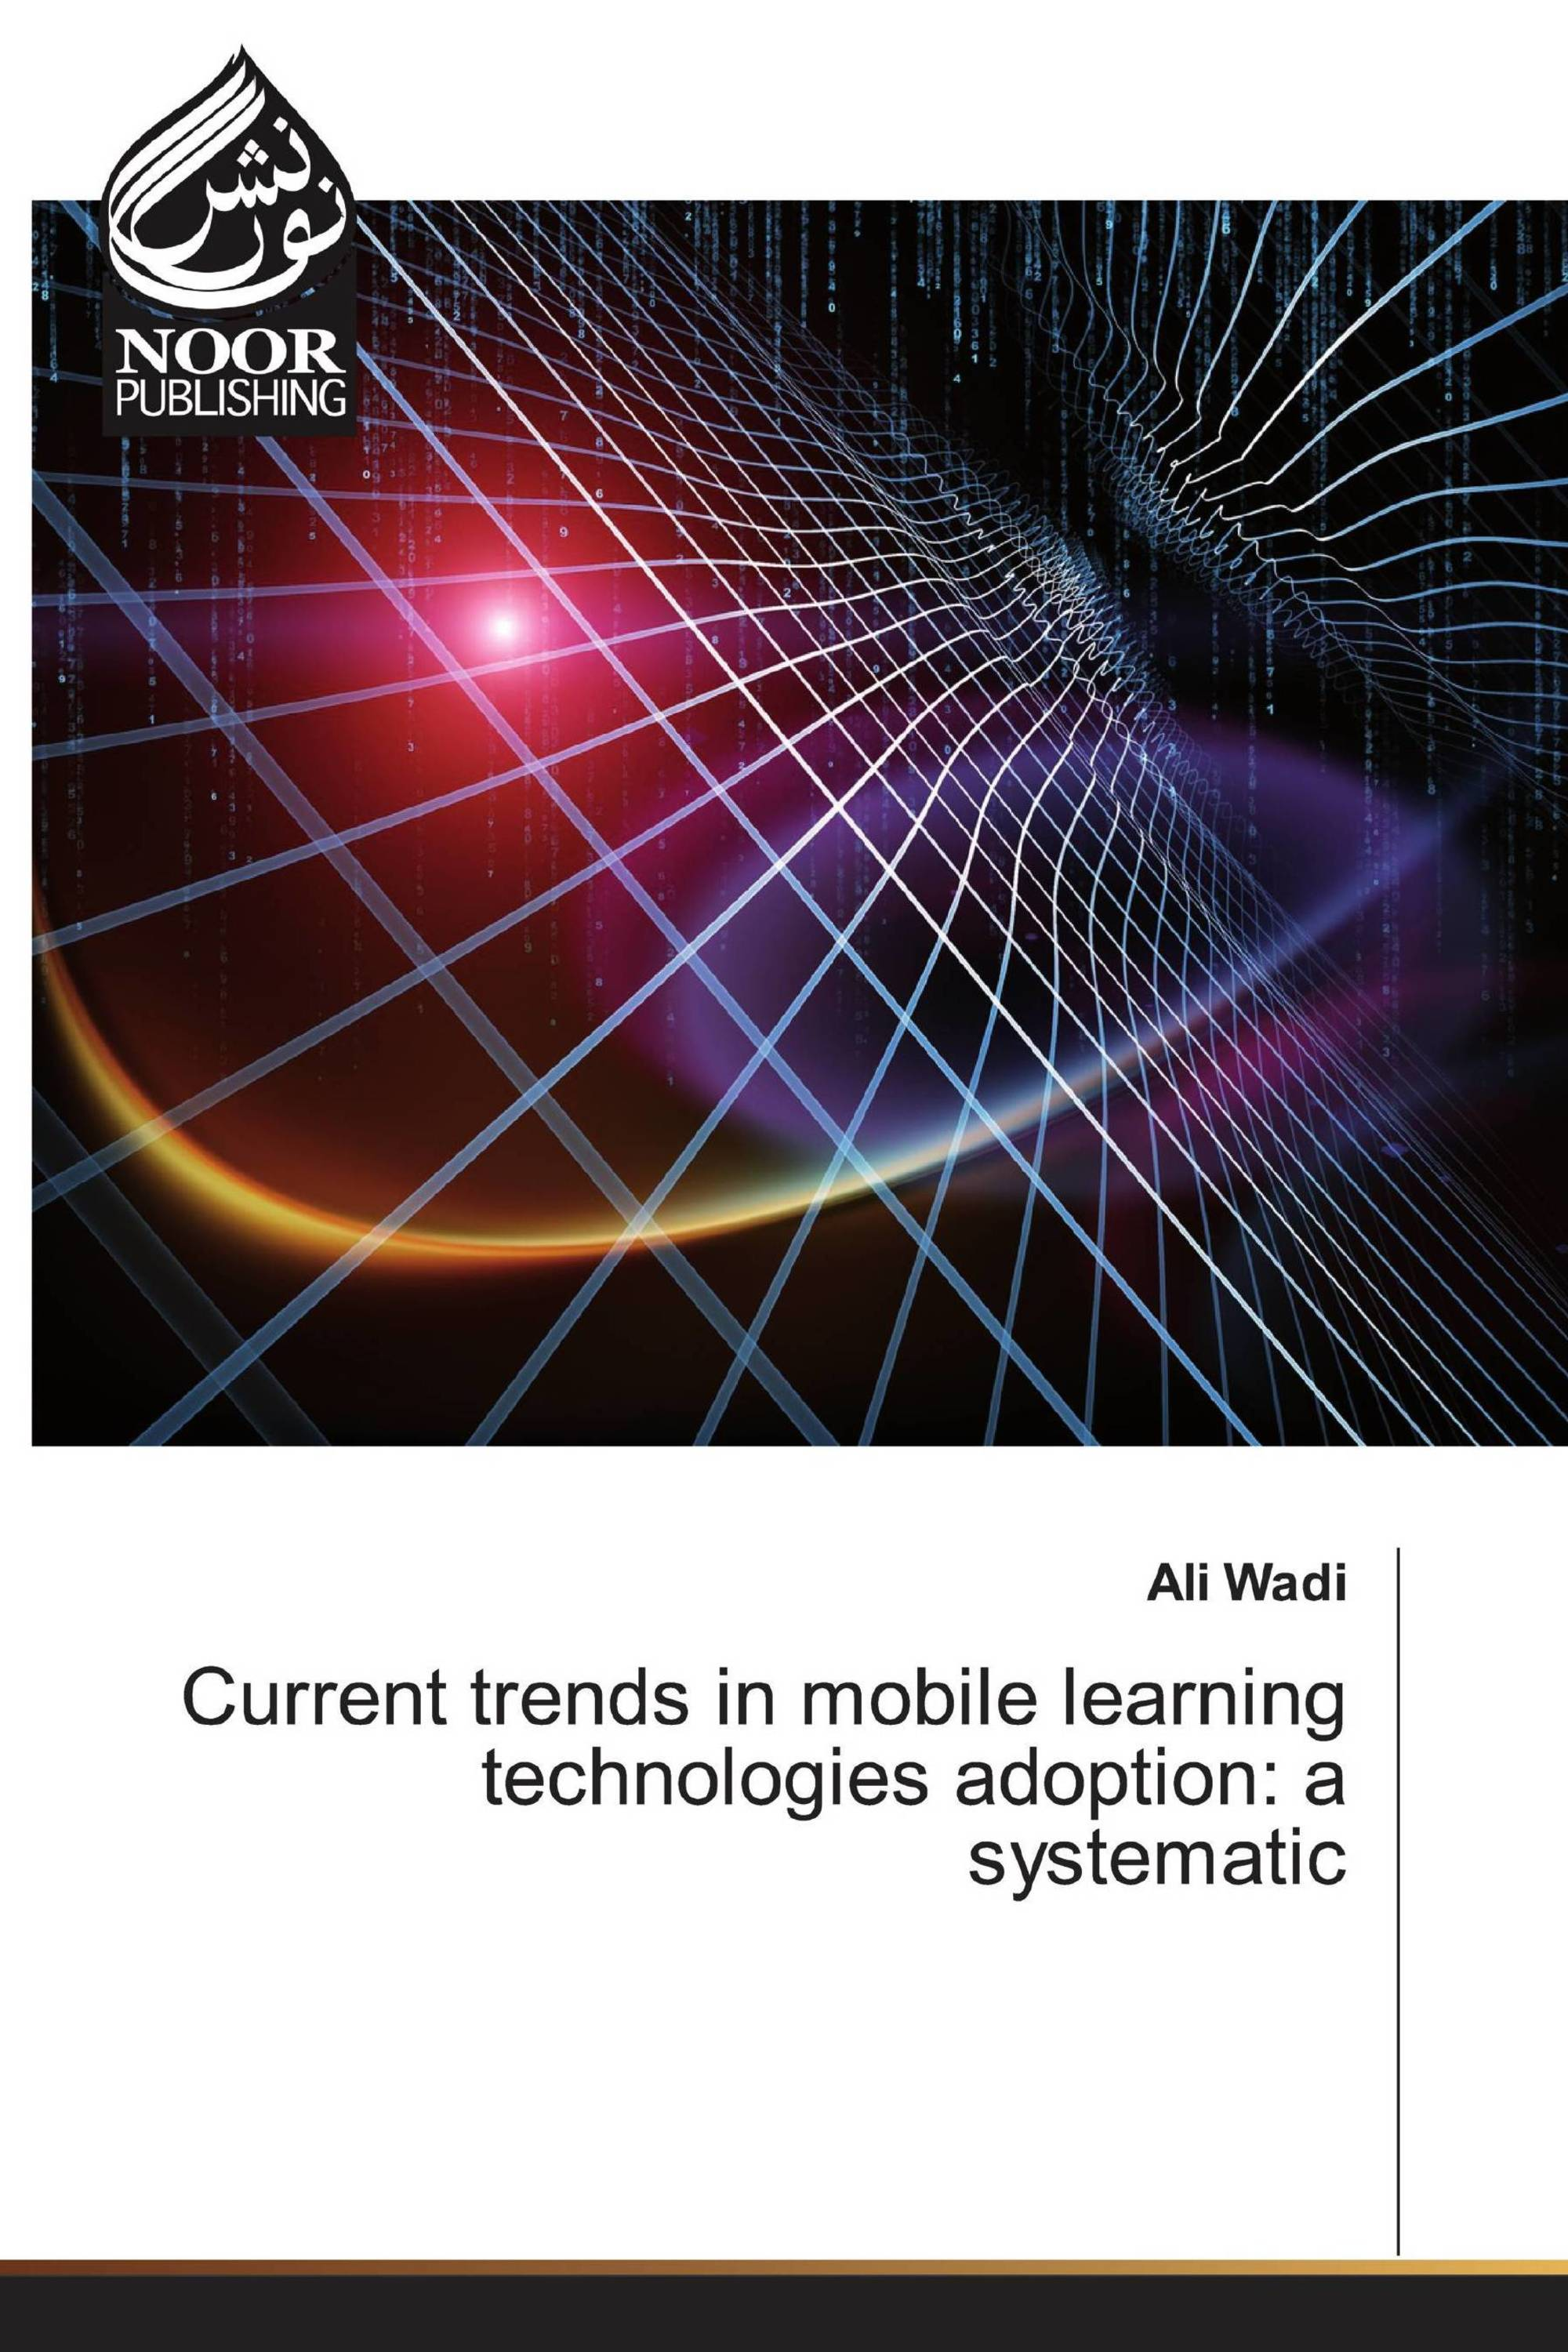 Current trends in mobile learning technologies adoption: a systematic